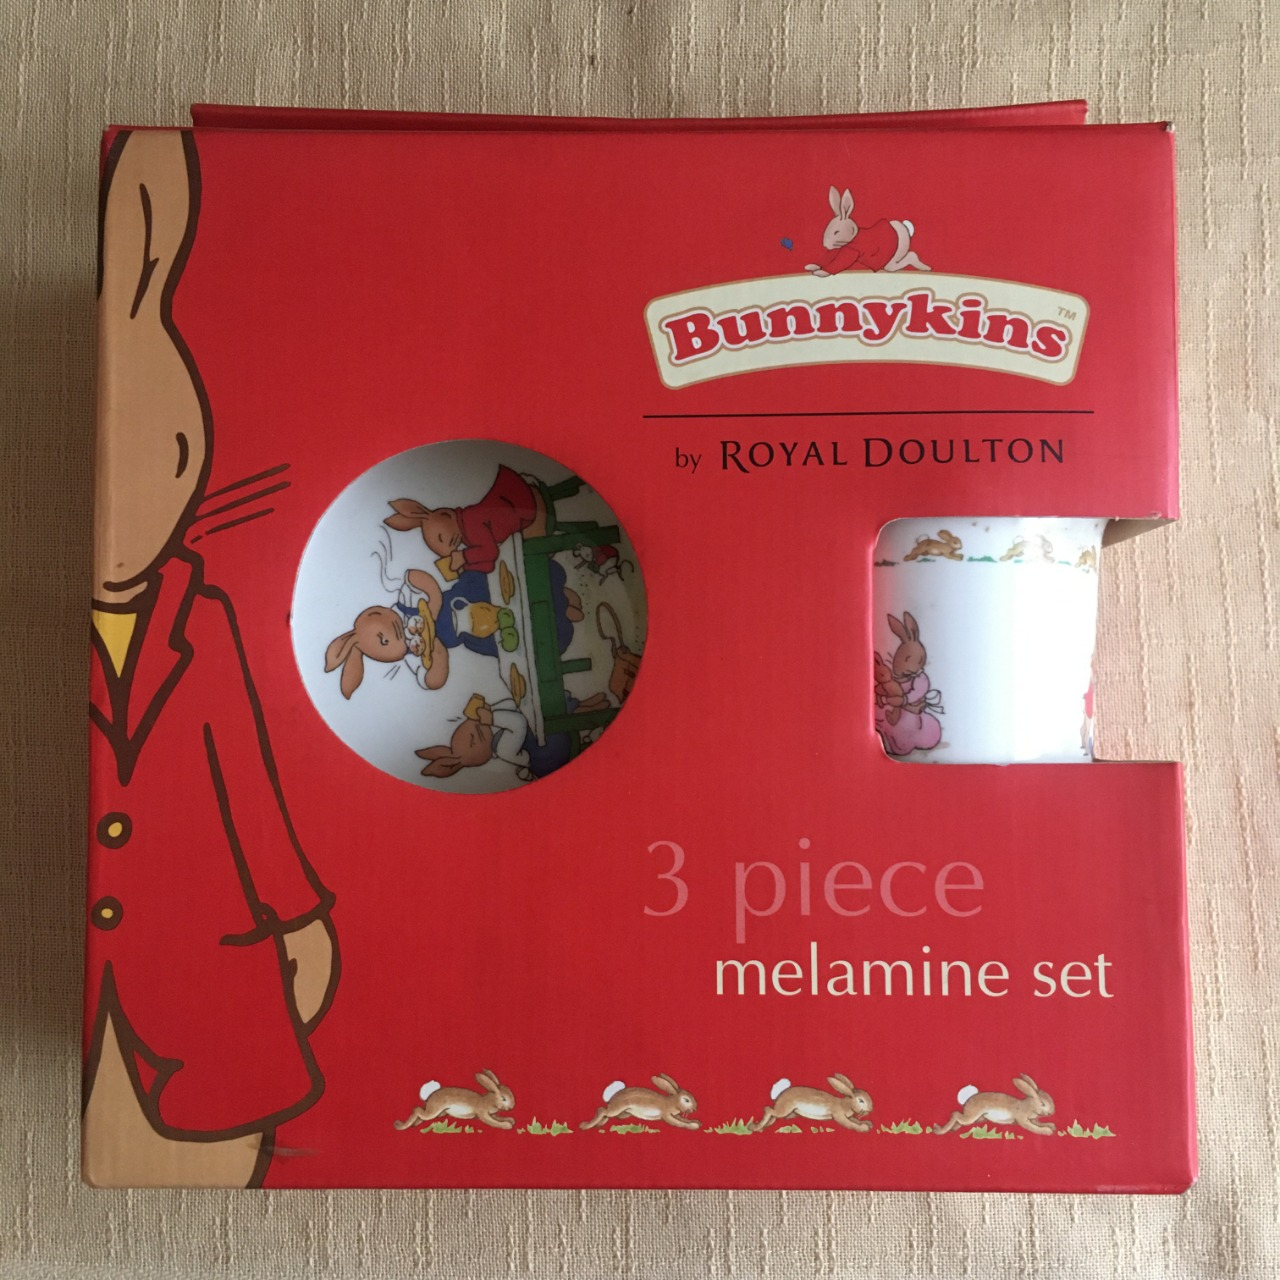 Bunnykins by Royal Doulton 3 Piece Melamine Set- Brand New